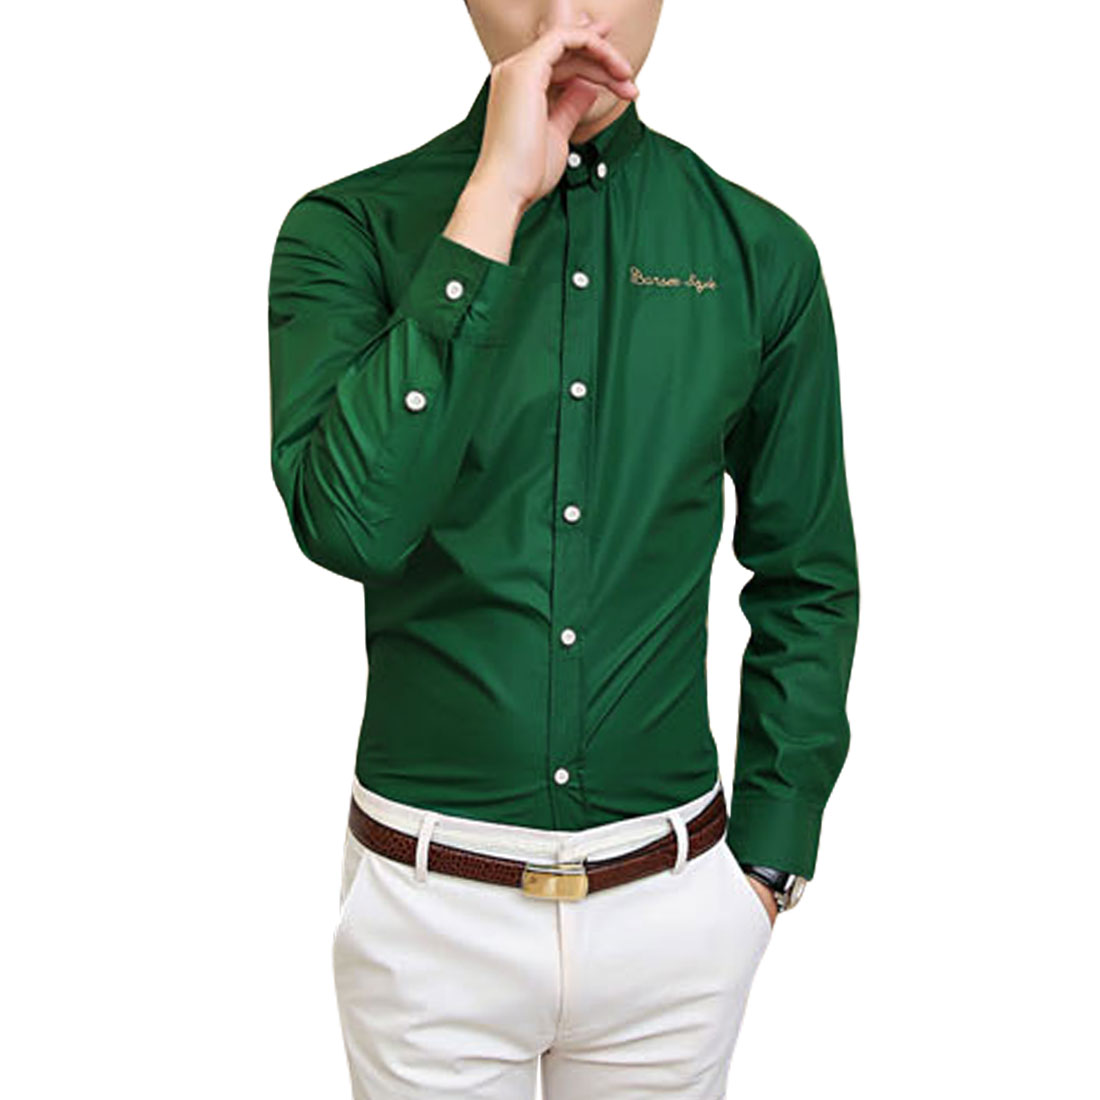 Azzuro Men's Button Cuffs Embroidery Letters Detail Casual Shirt Green (Size M / 40��